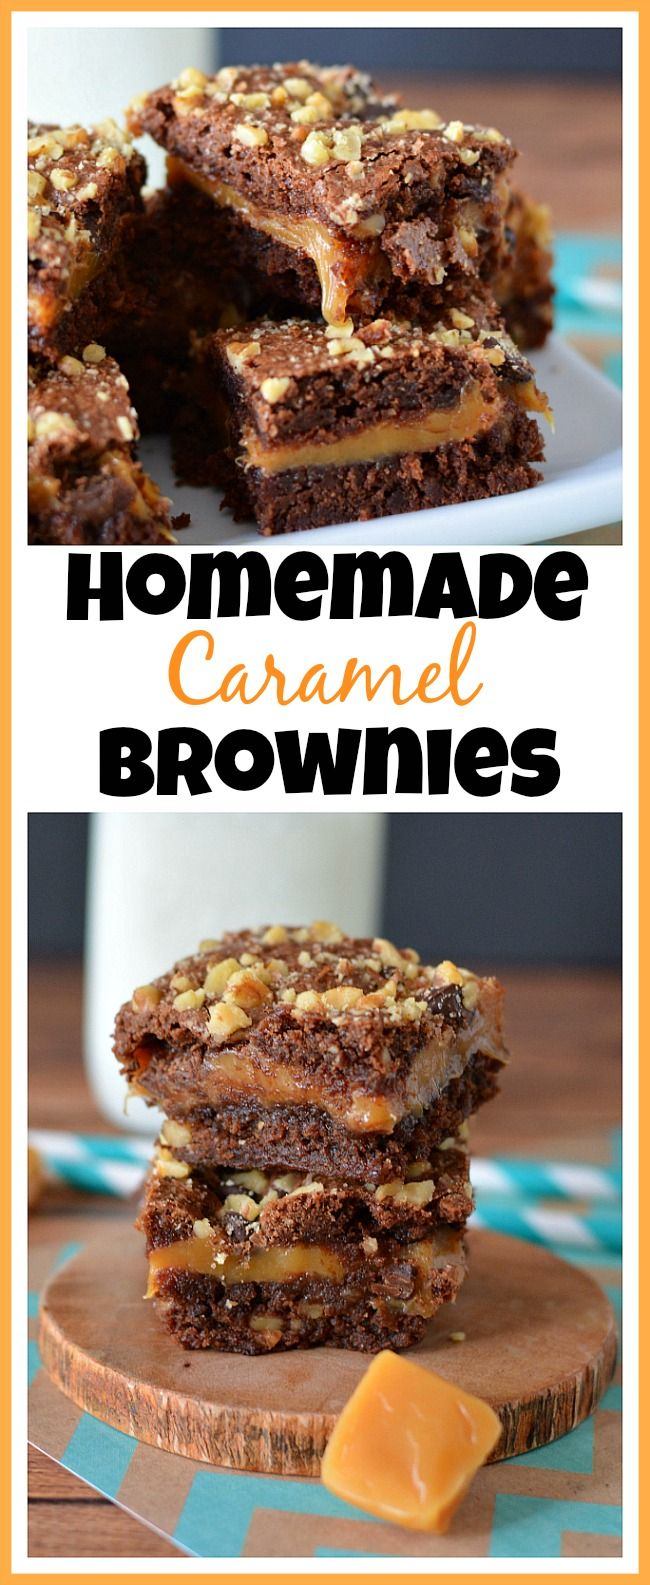 If you love chocolate and caramel, then you'll love them together in these caramel brownies! The caramel is so gooey and delicious warm from the oven! | dessert, recipe, baking